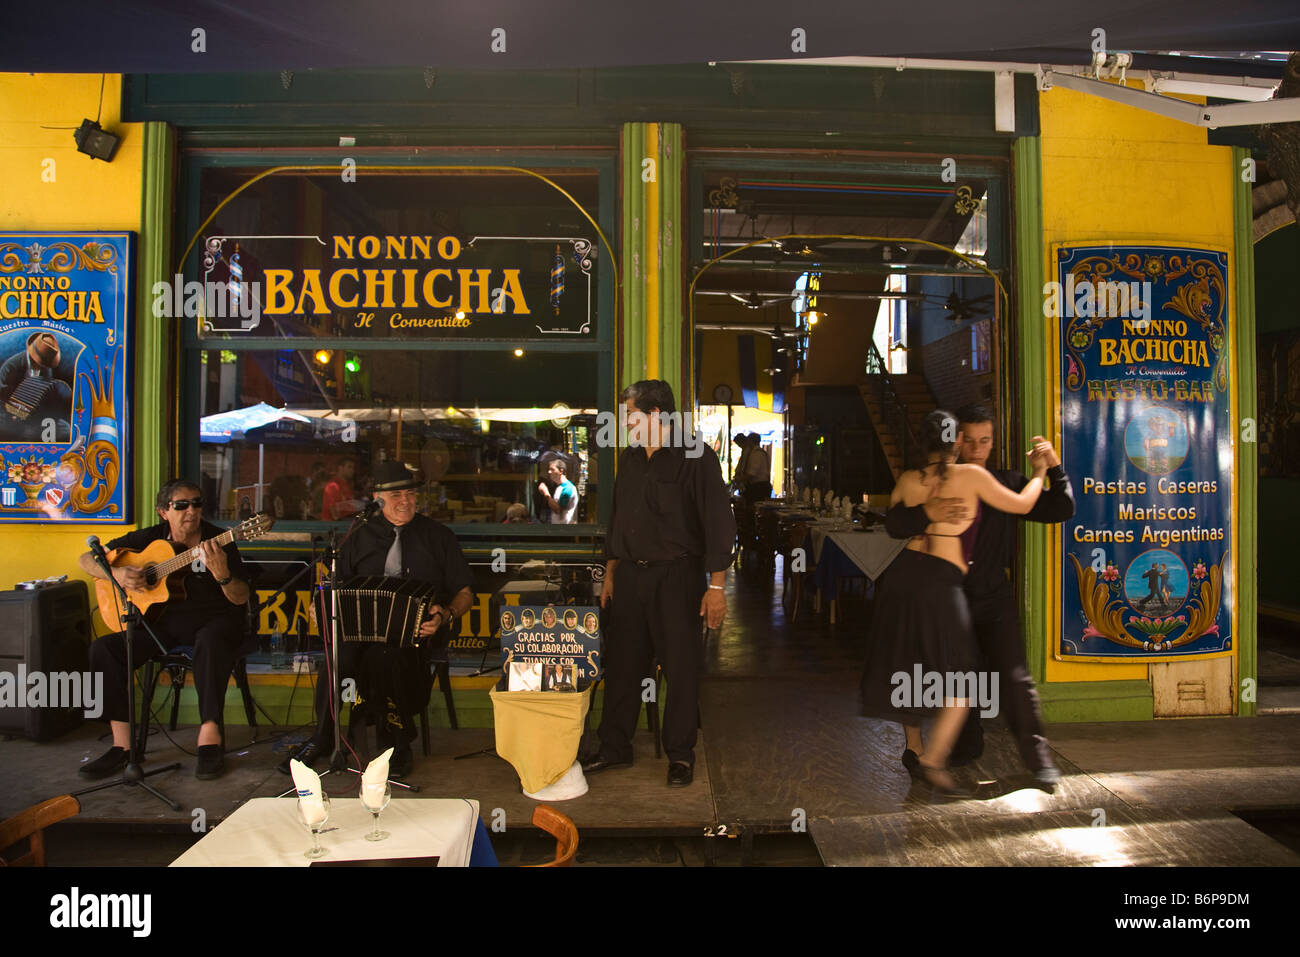 Tango dancers and band in street cafe in La Boca Buenos Aires Argentina South America - Stock Image